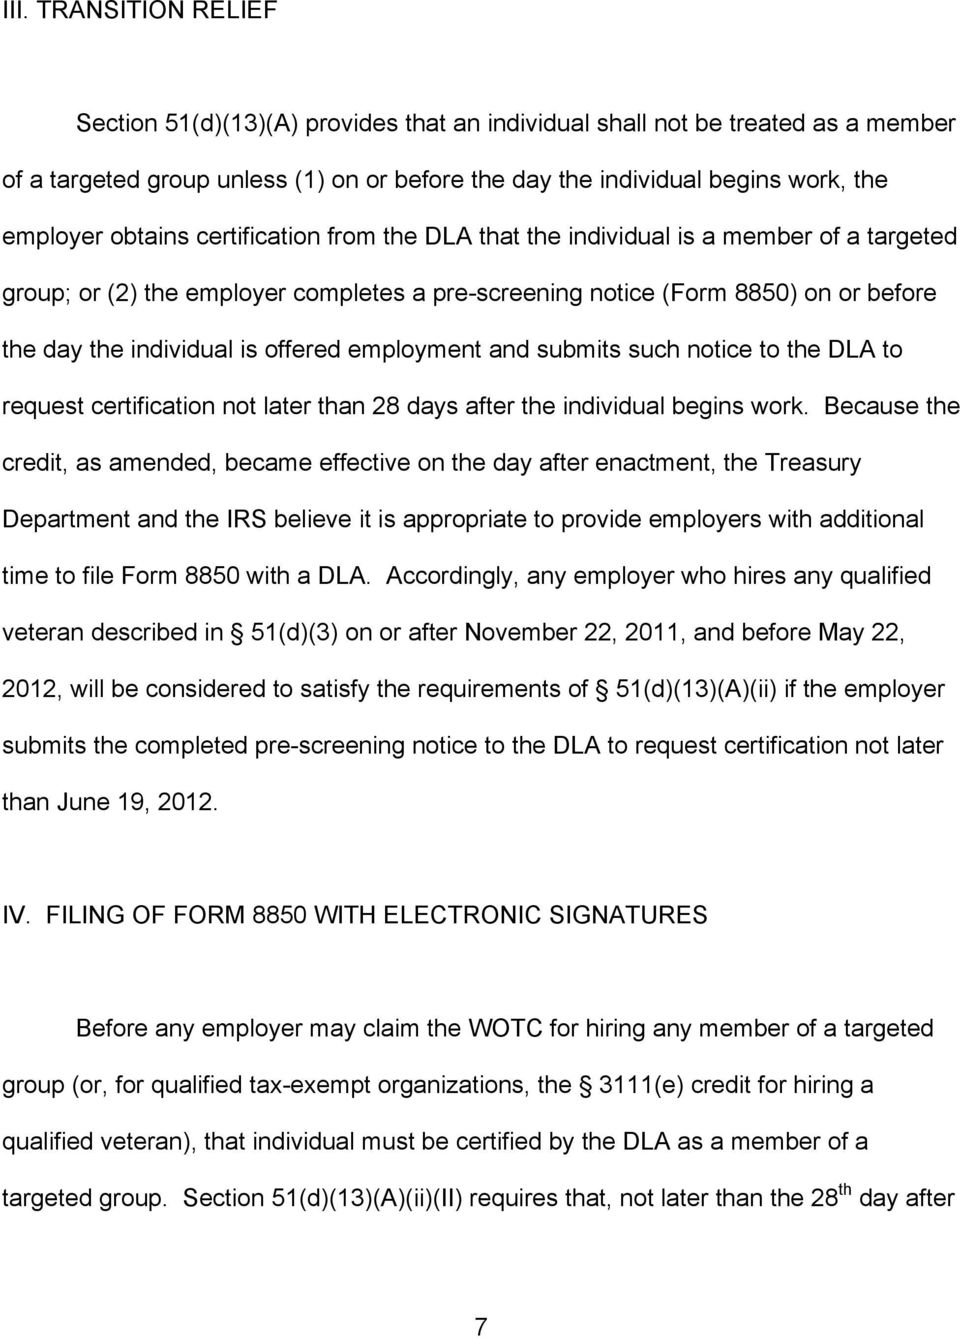 employment and submits such notice to the DLA to request certification not later than 28 days after the individual begins work.